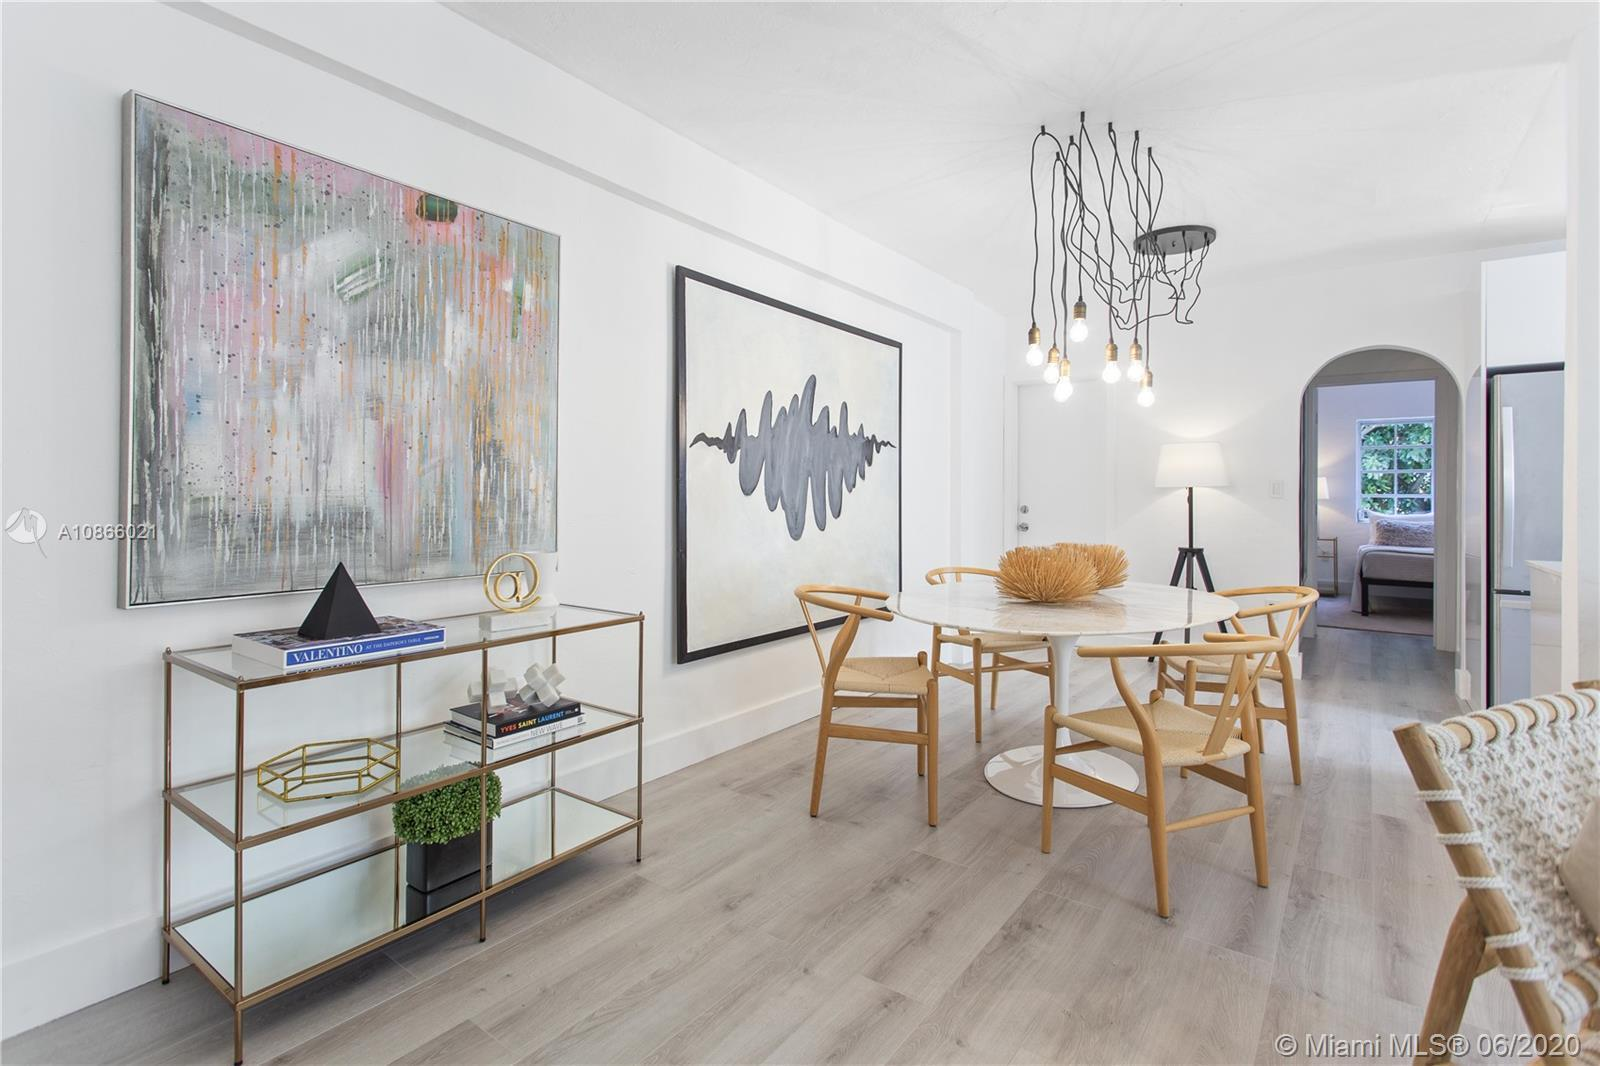 HIDDEN GEM IN THE HEART OF MIAMI BEACH'S ART DECO DISTRICT - NEWLY RENOVATED 2 BED/2 BATH -CORNER 2n